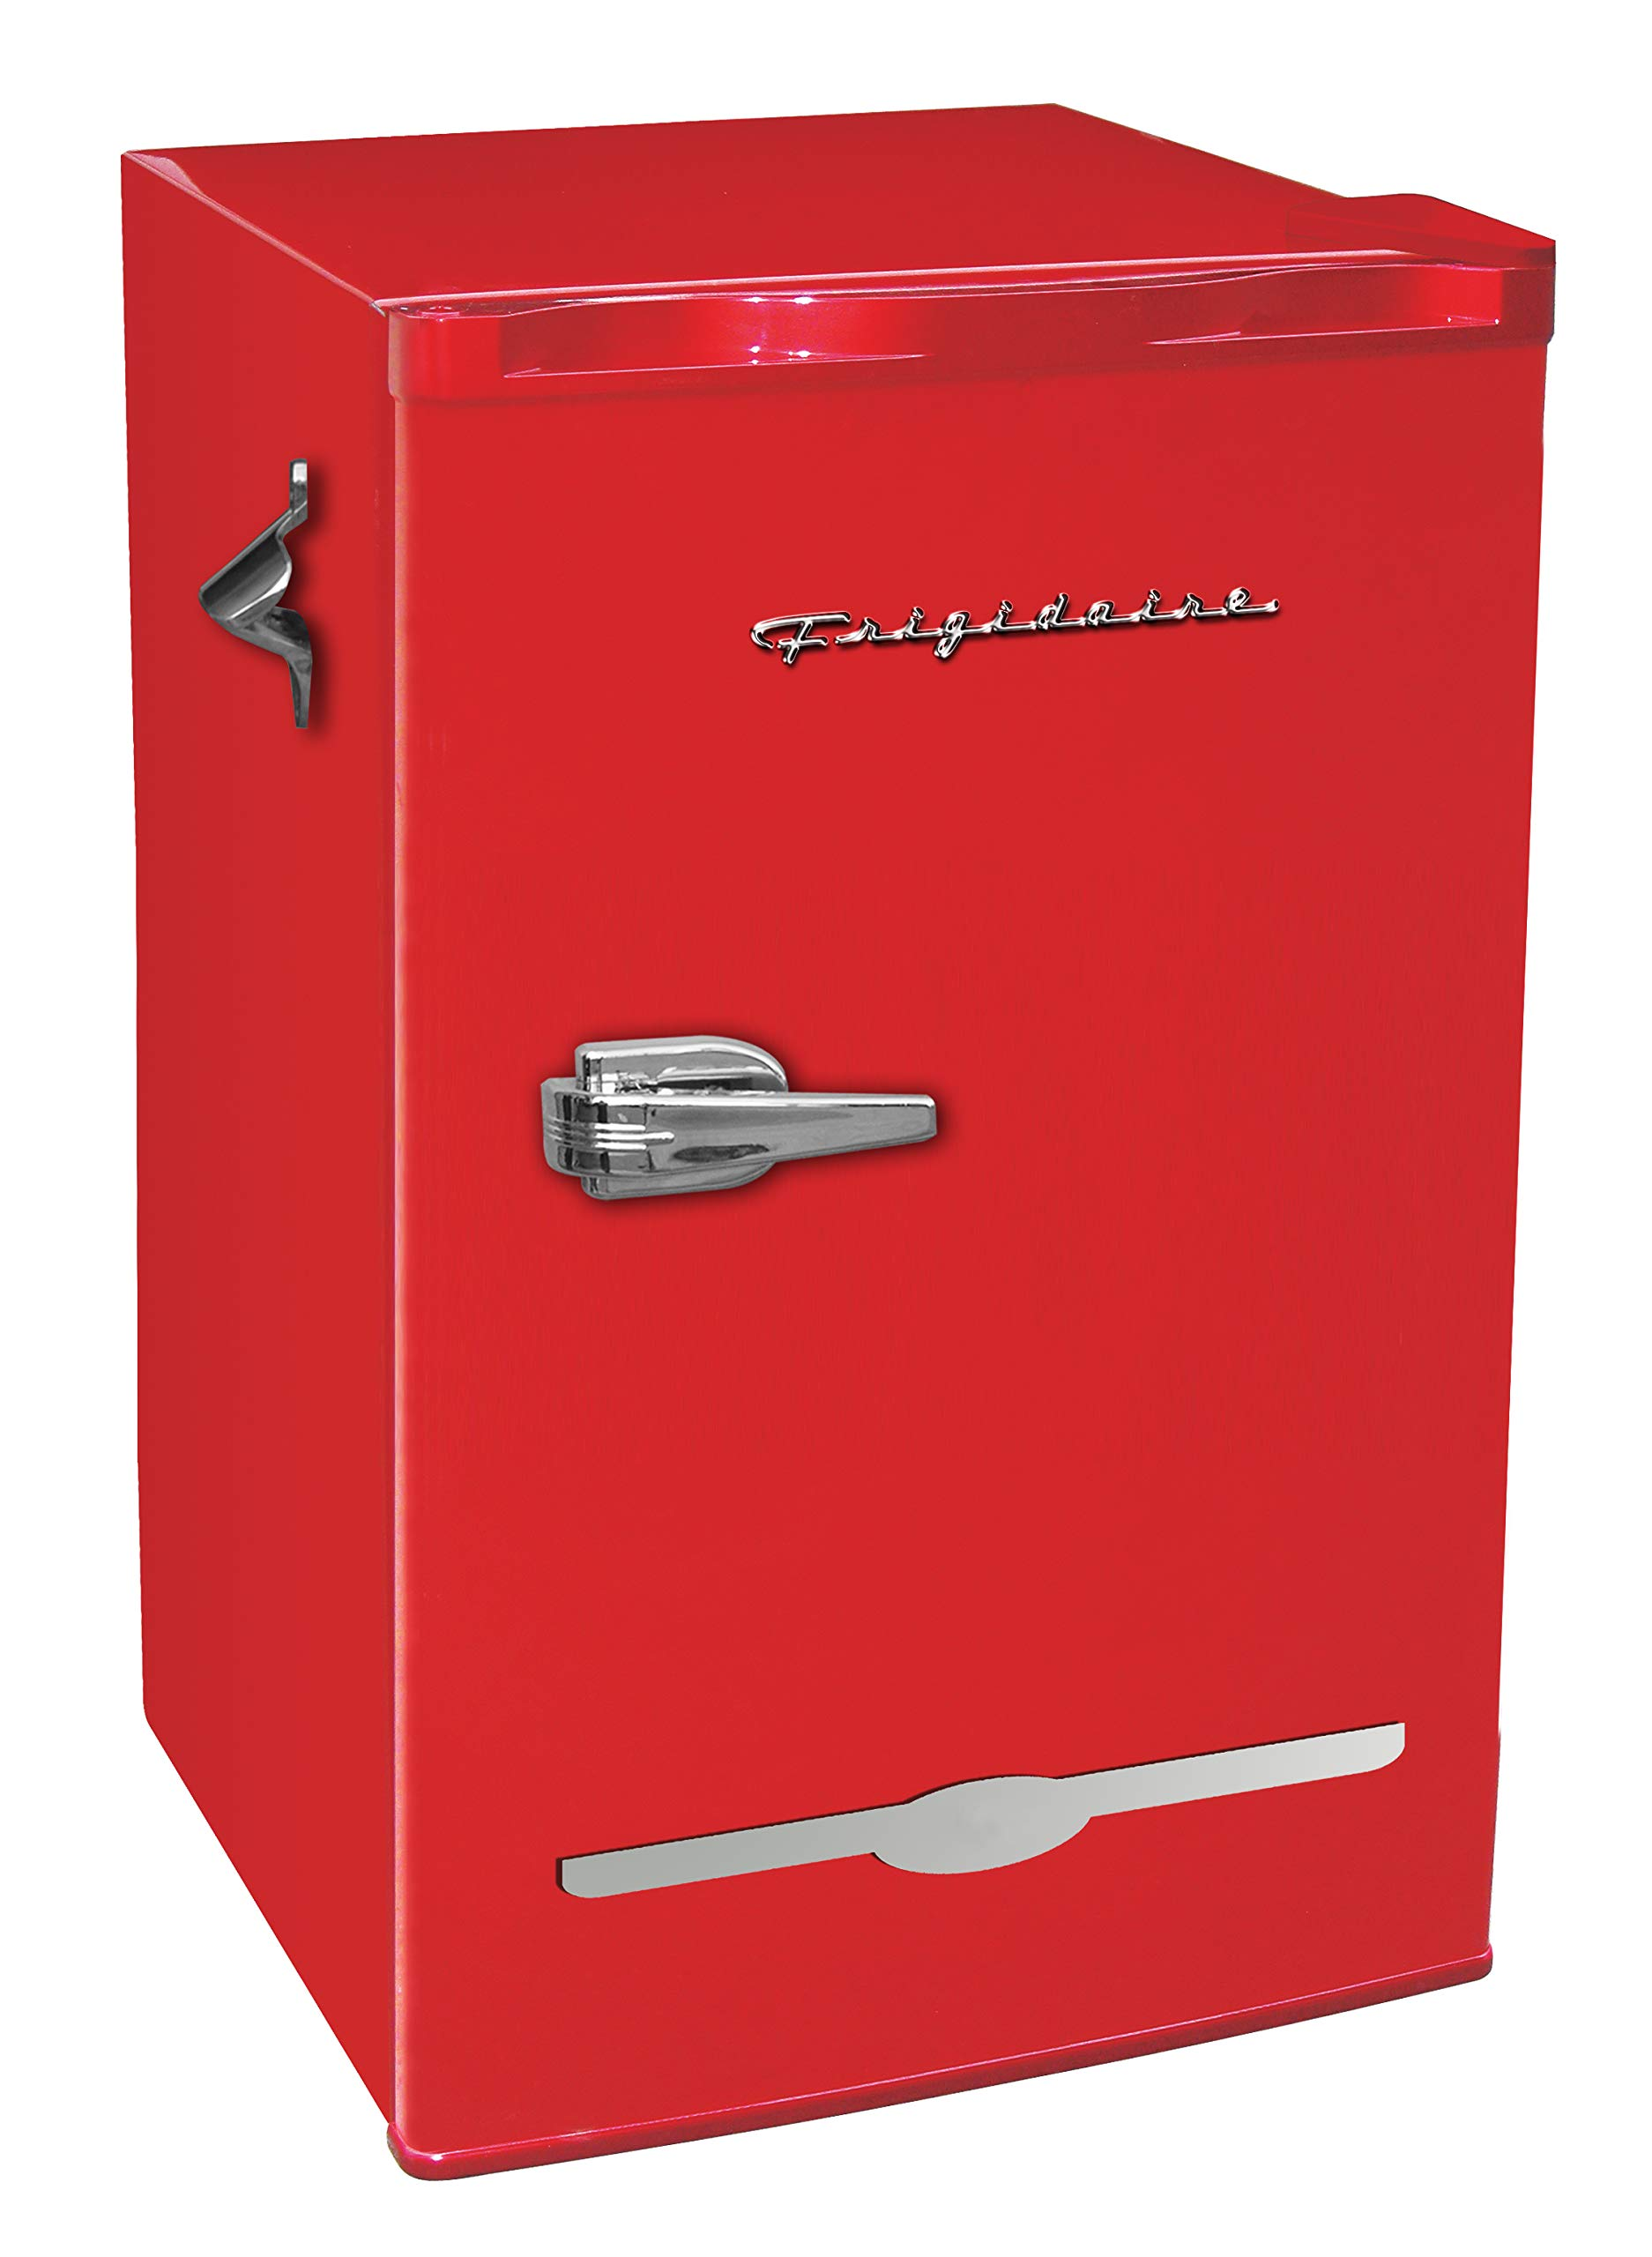 Frigidaire Retro Bar Fridge Refrigerator with Side Bottle Opener, 3.2 cu. ft, Red by FRIGIDAIRE